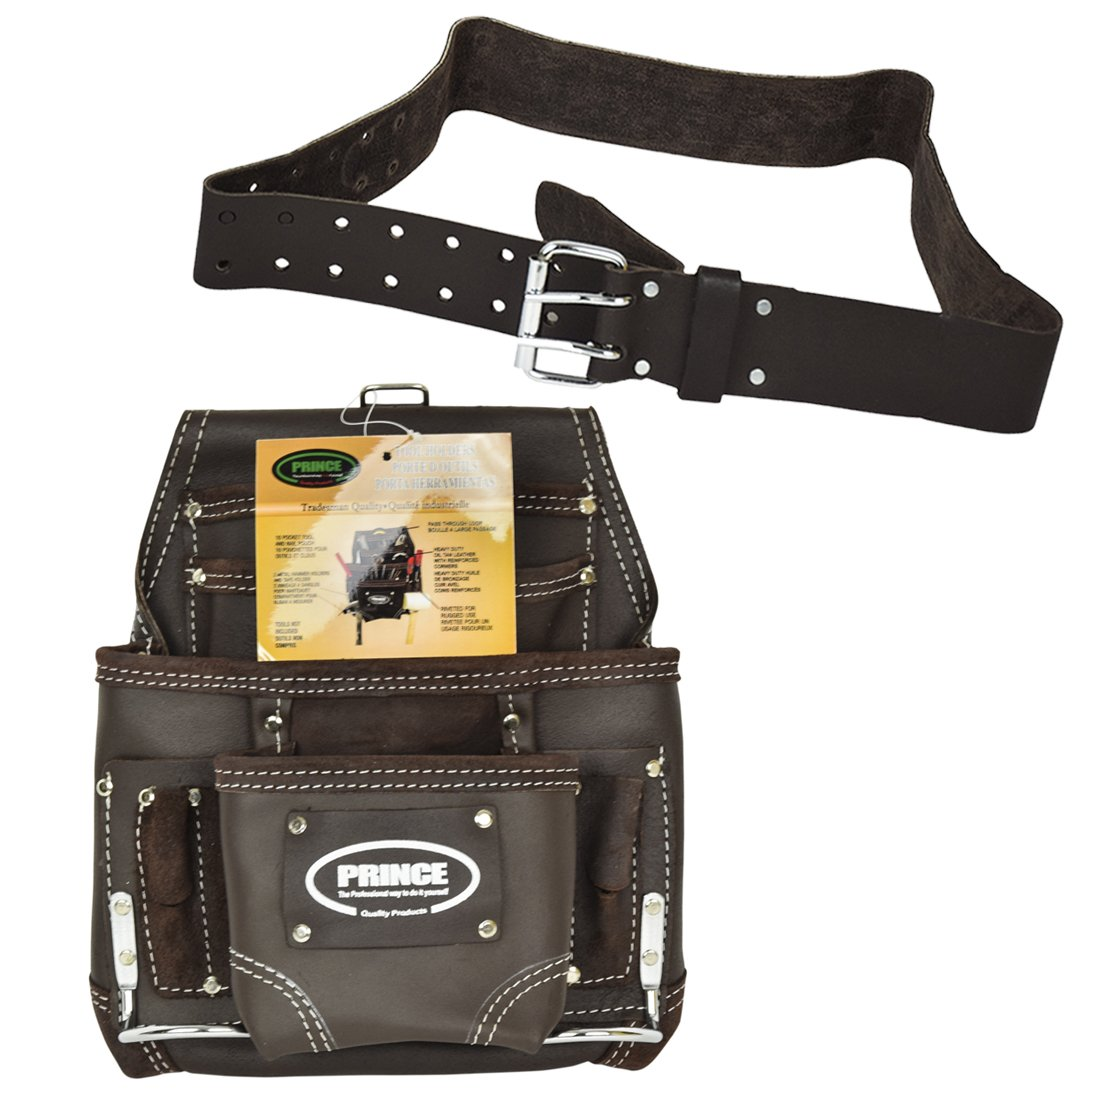 Prince Logo Bundle- 10 Pocket Oil Tanned Leather Nail and Tool Pouch with 2'' Double Pin Work Belt- (2 Piece Set) by Prince (Image #3)